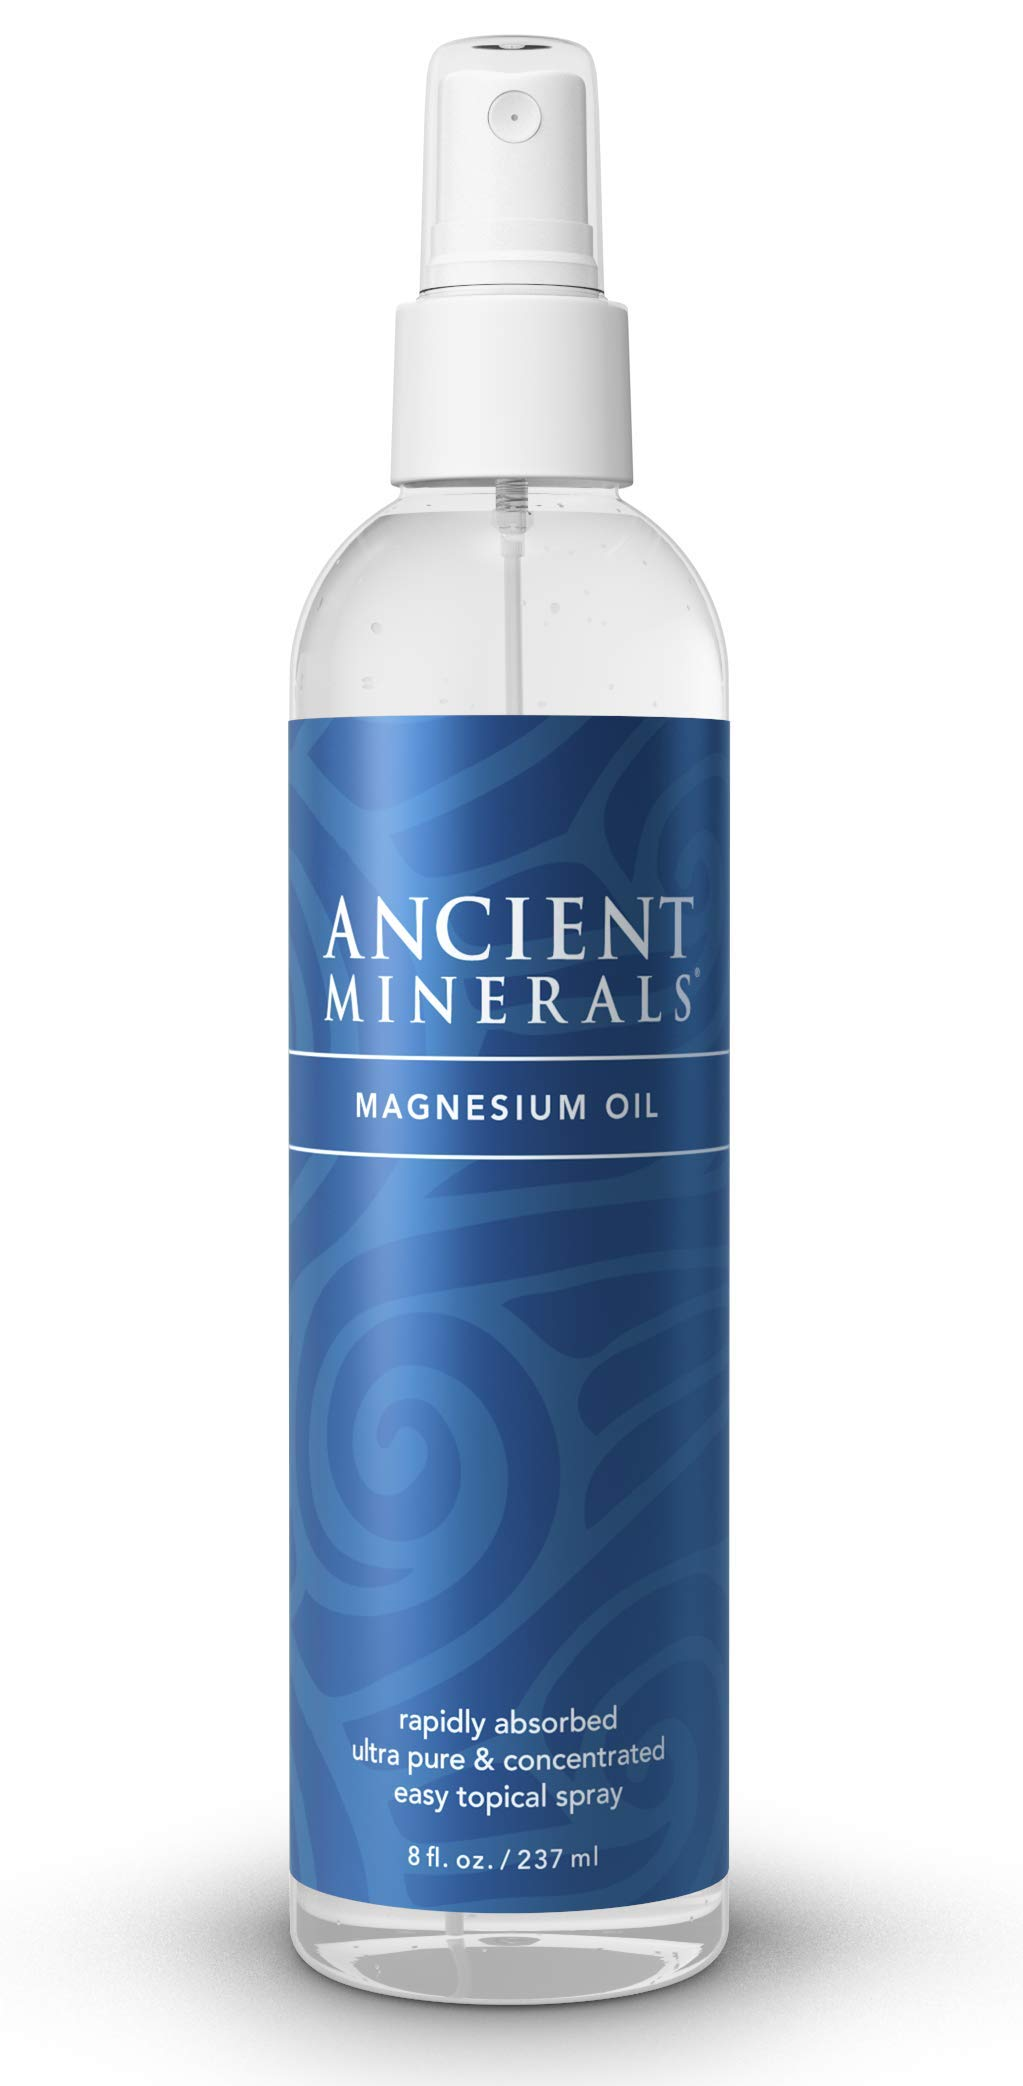 Ancient Minerals Magnesium Oil Spray Bottle of Pure Genuine Zechstein Magnesium Chloride - Topical Magnesium Supplement for Skin Application and Dermal Absorption (8oz) by Ancient Minerals